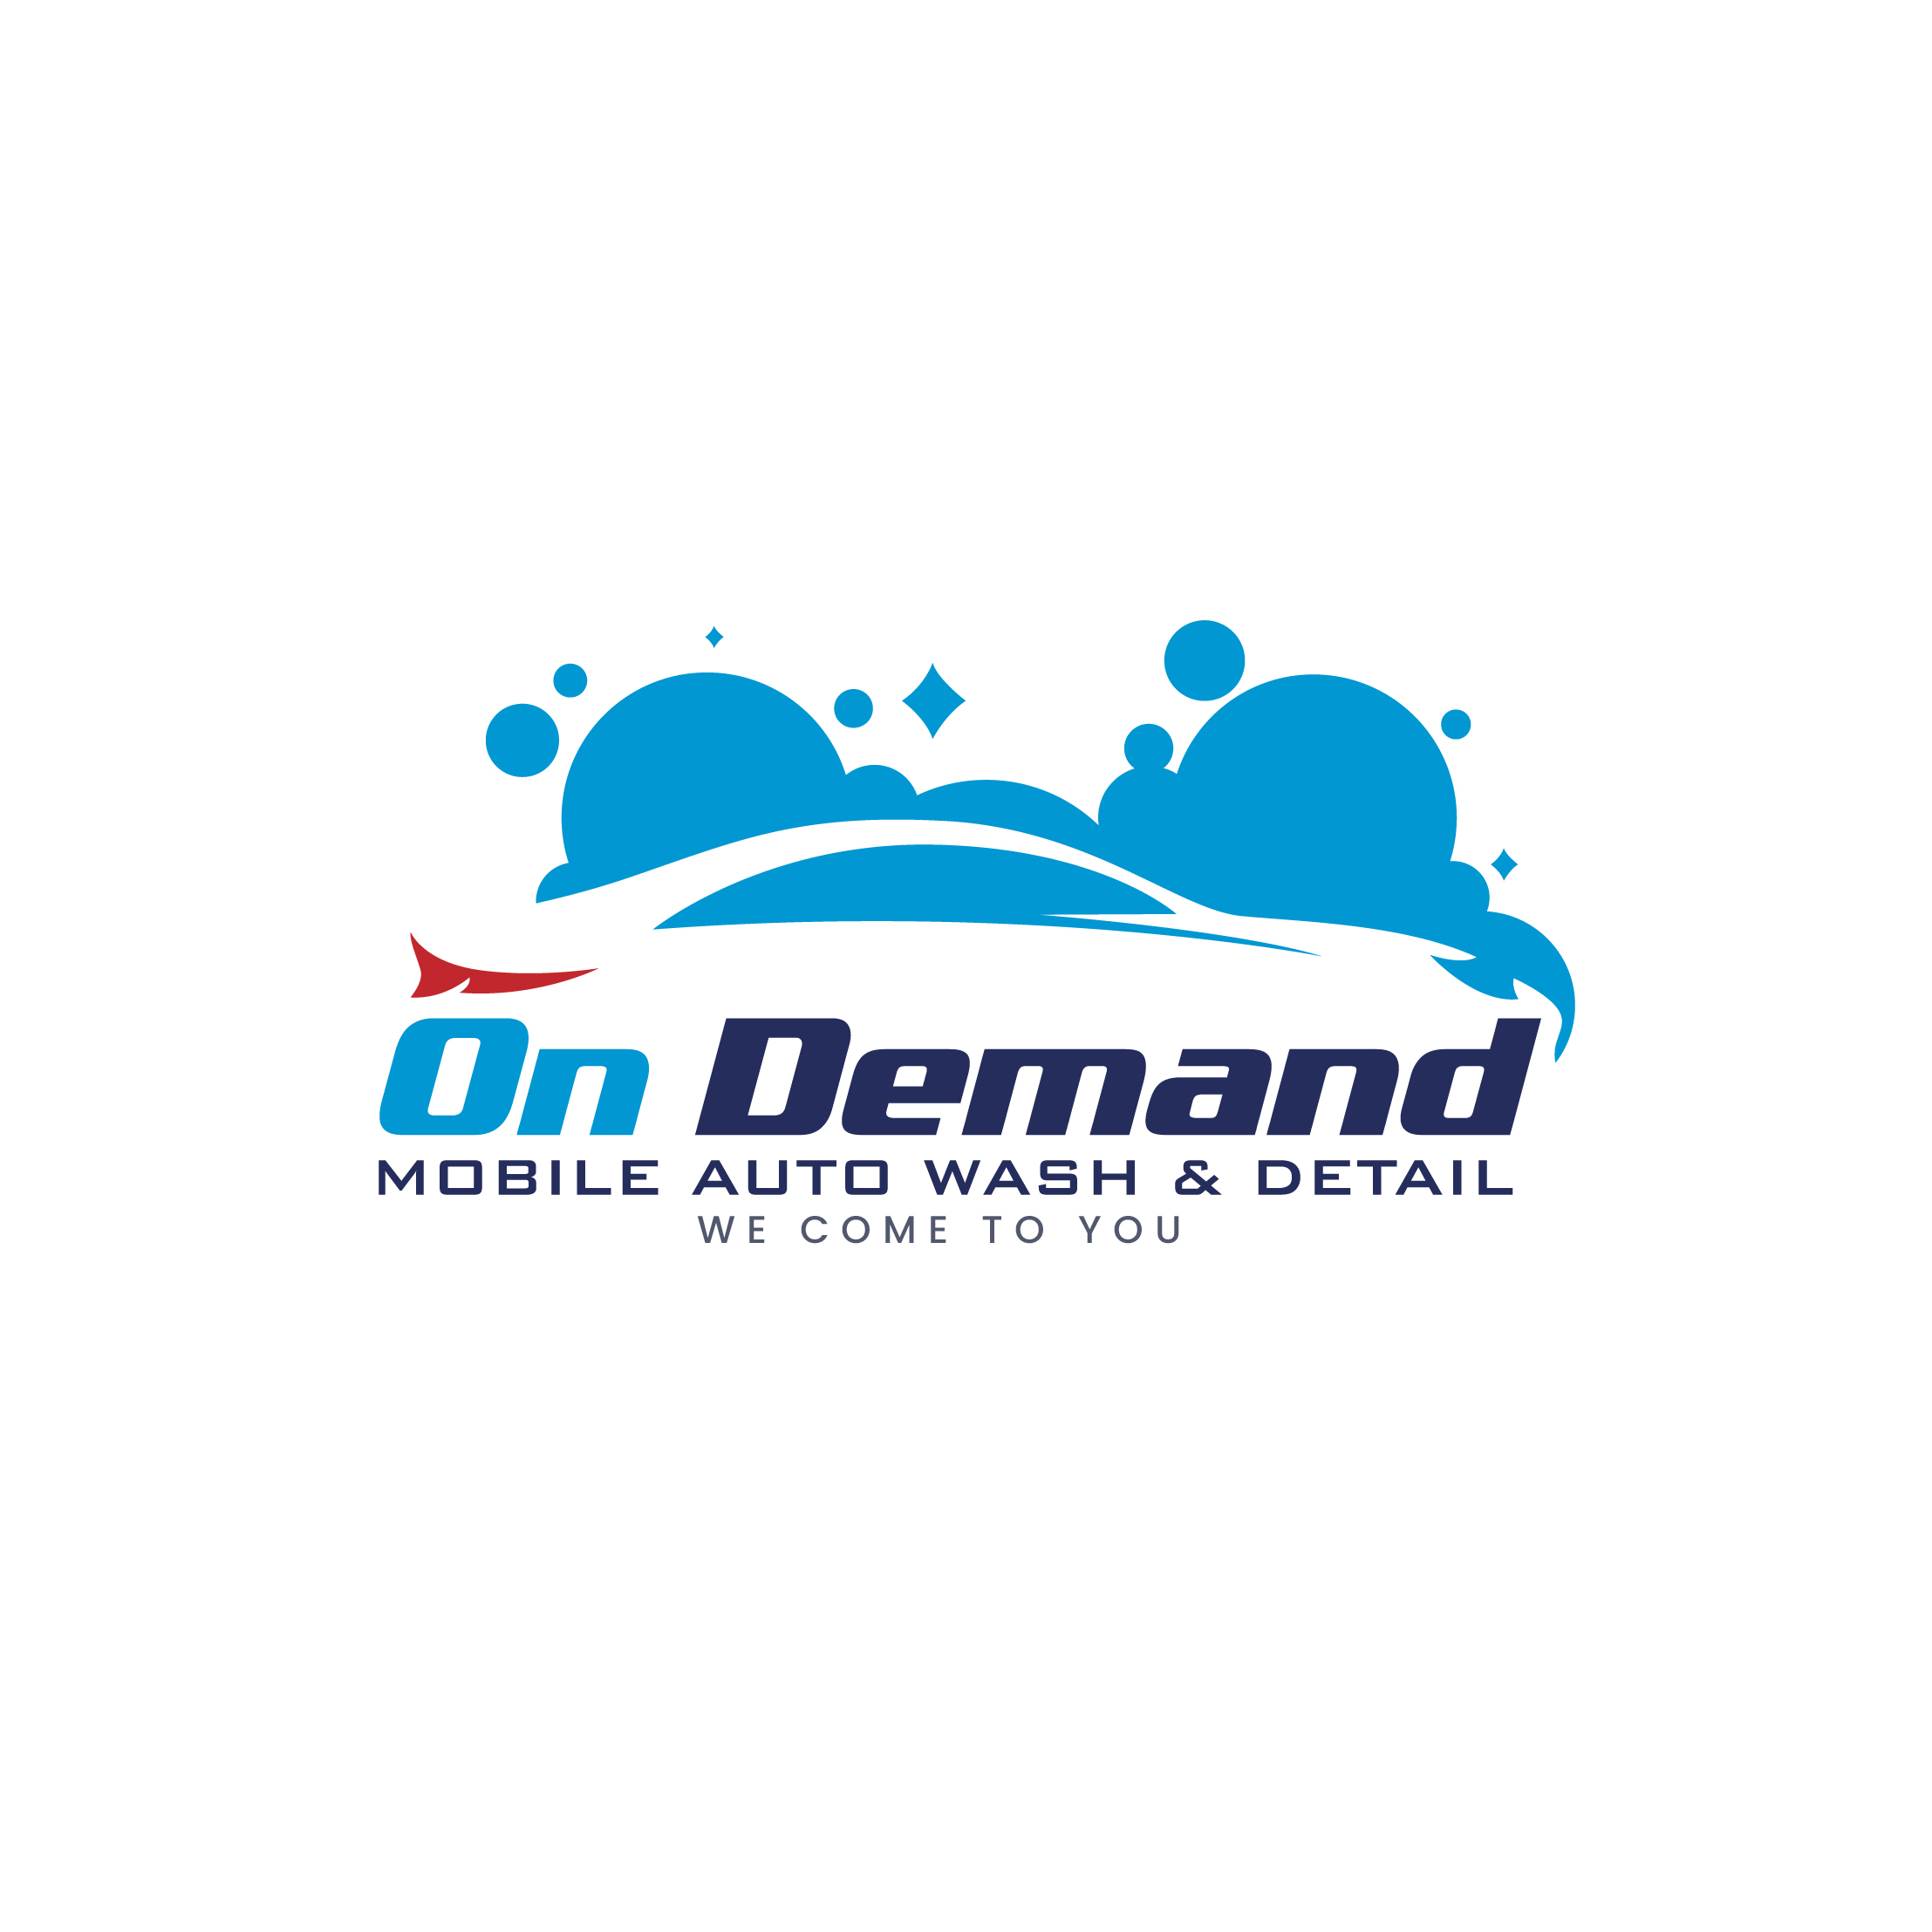 On Demand Mobile Auto Wash & Detail